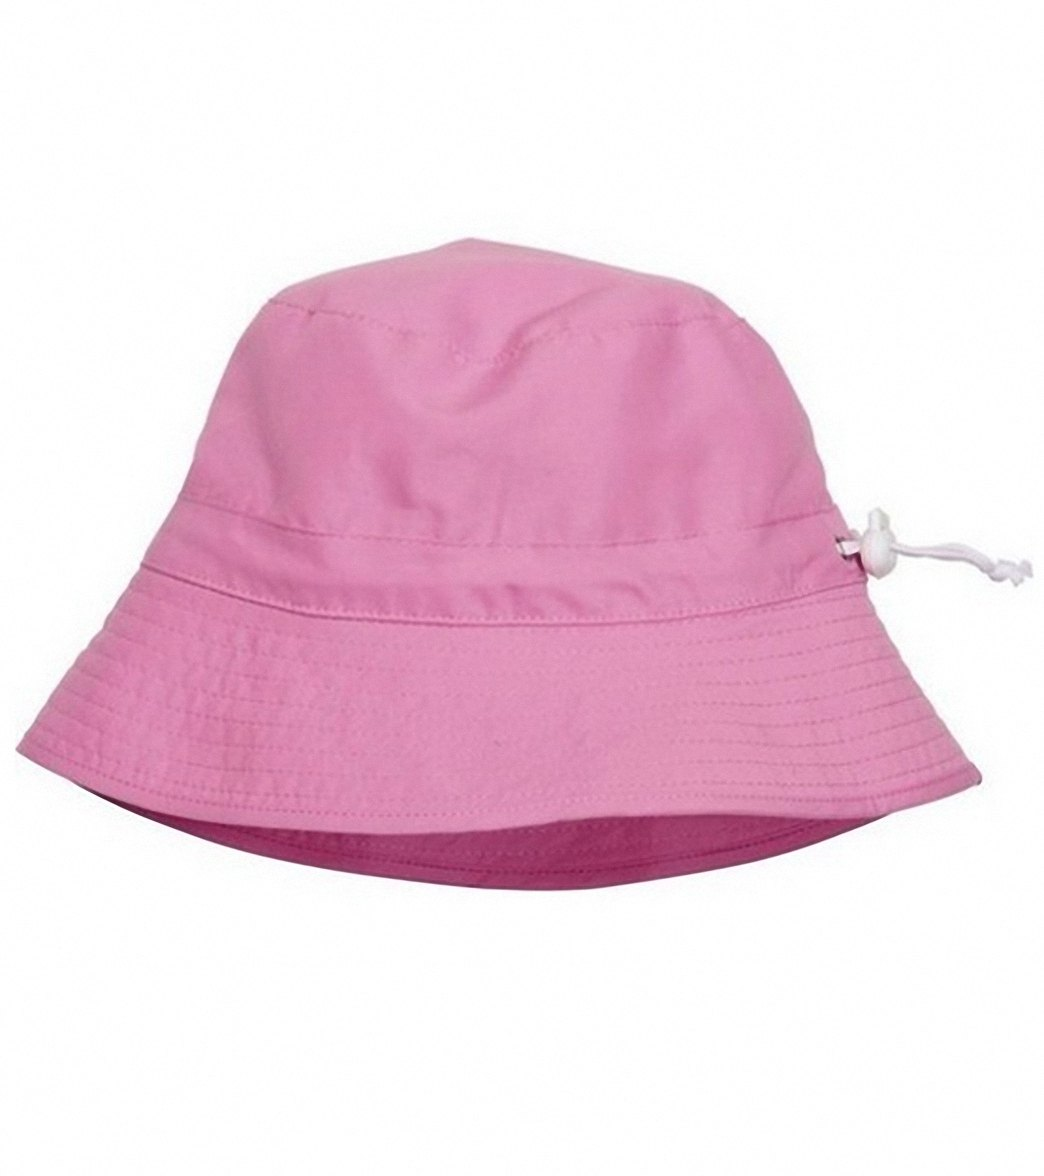 a3c4228a244cd Snapper Rock Girls  Pink Bucket Hat (Kids) at SwimOutlet.com